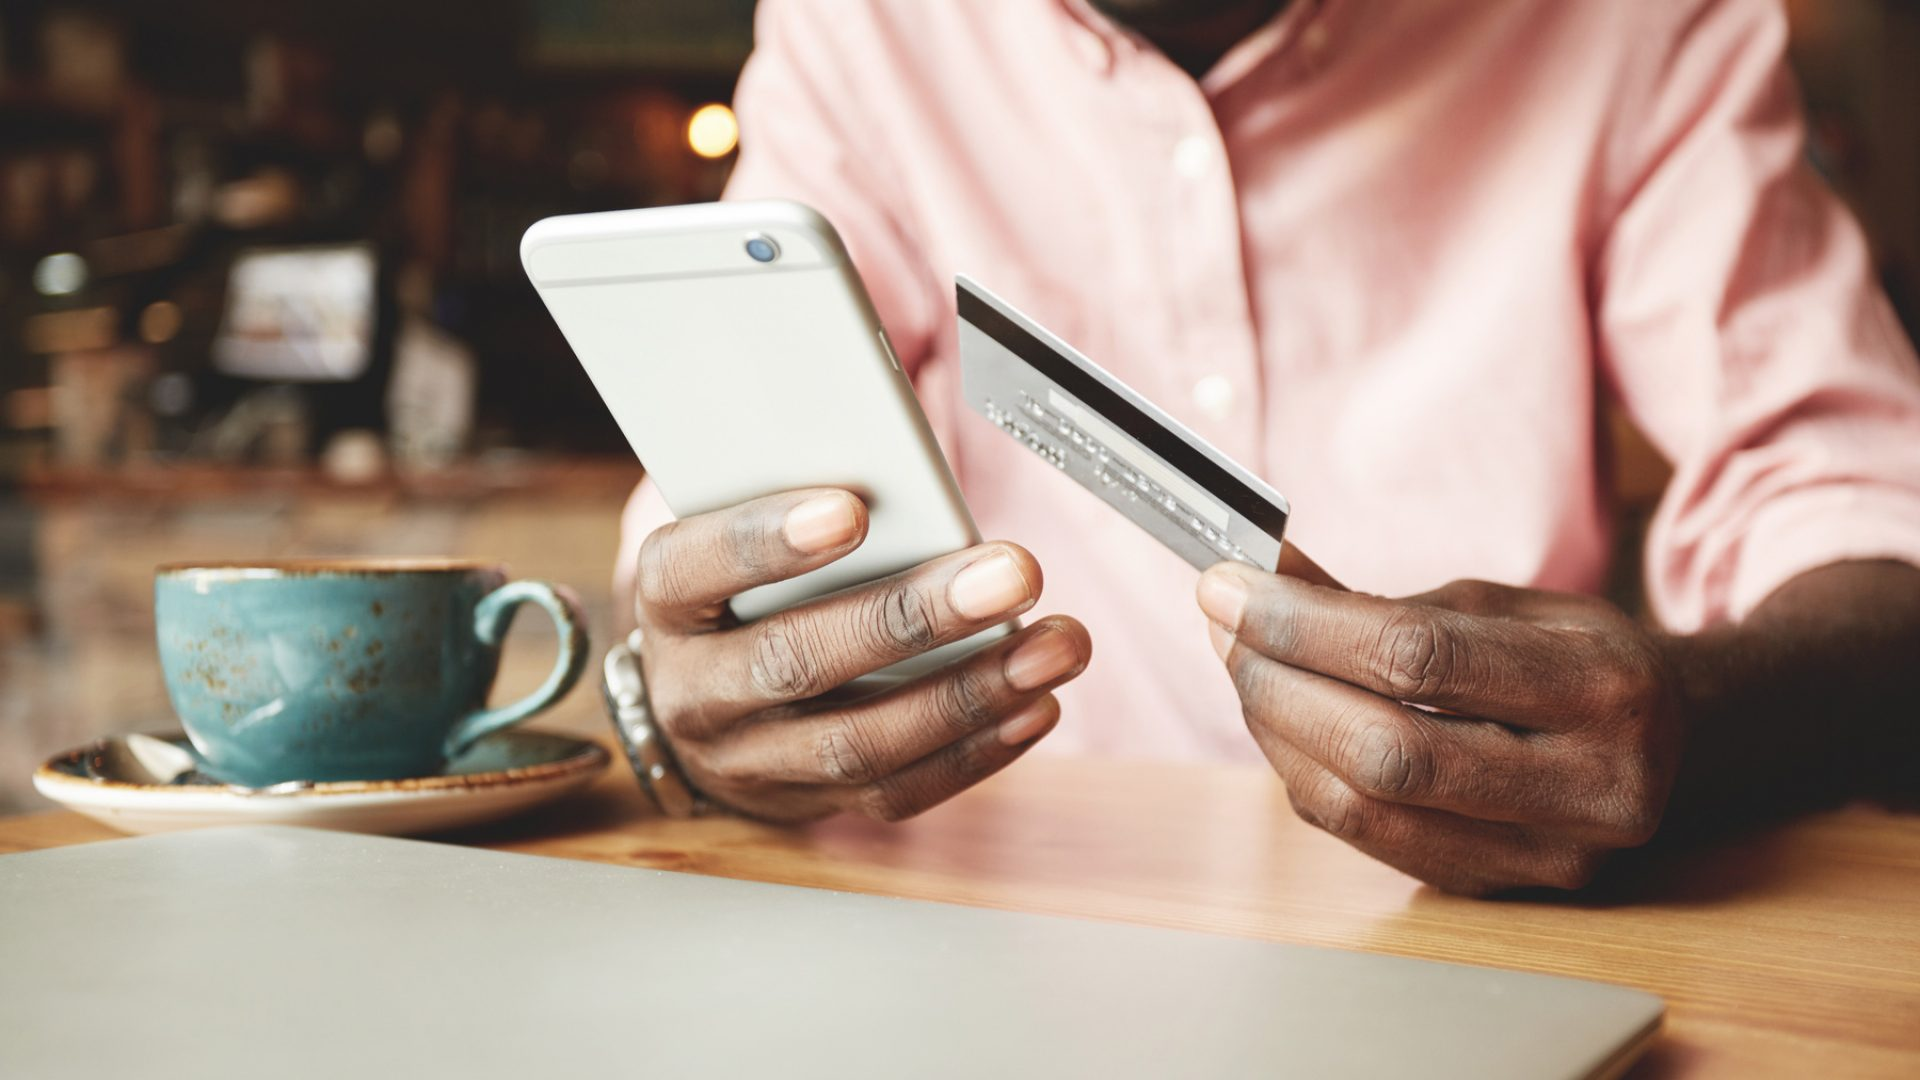 Mobile banking in Portugal